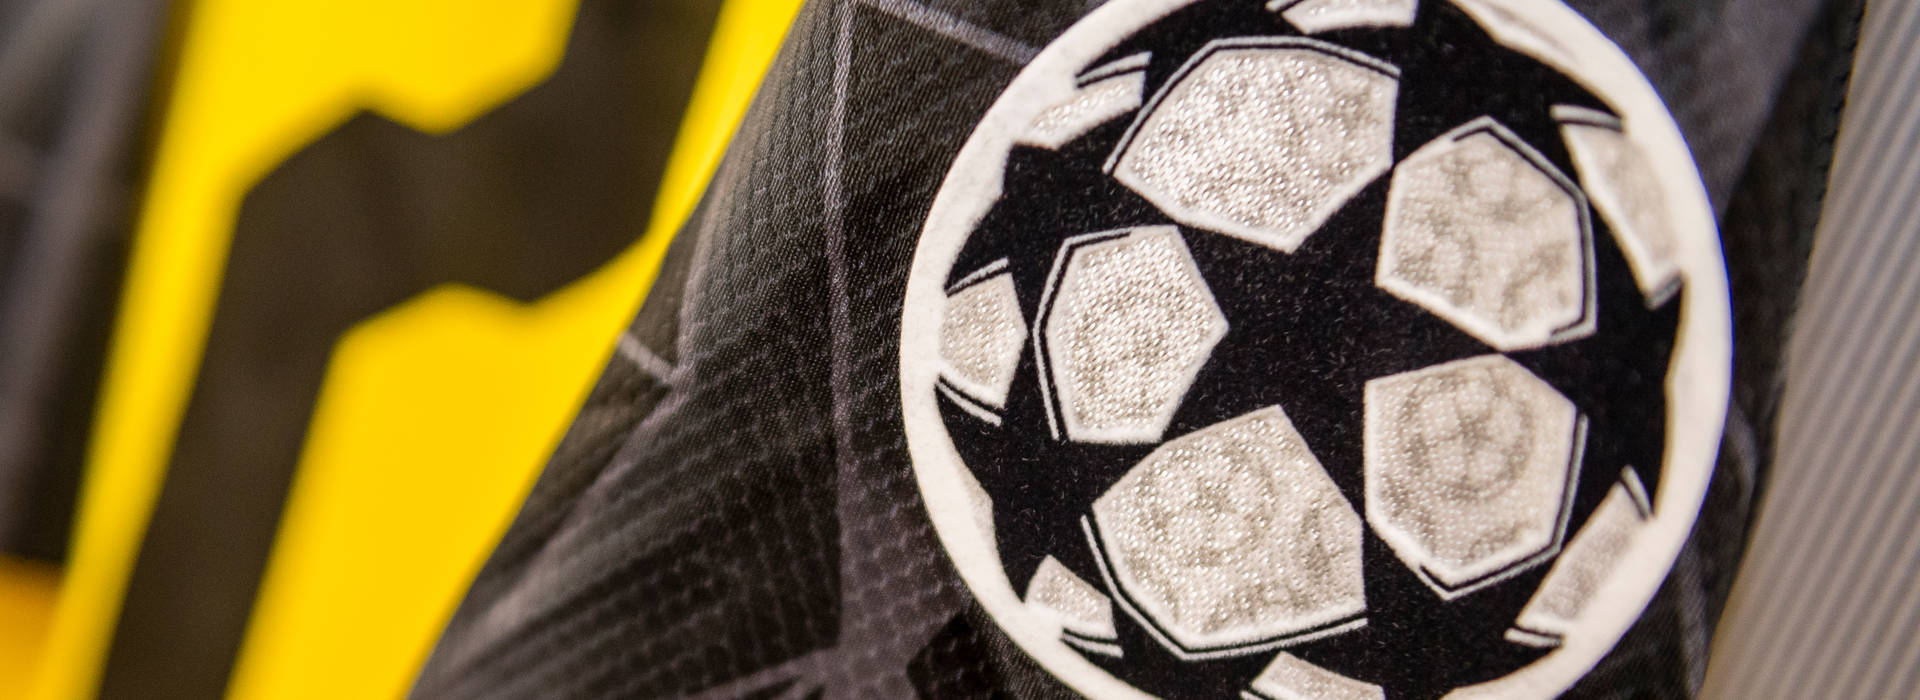 €20 million: Act of solidarity from the Champions League participants